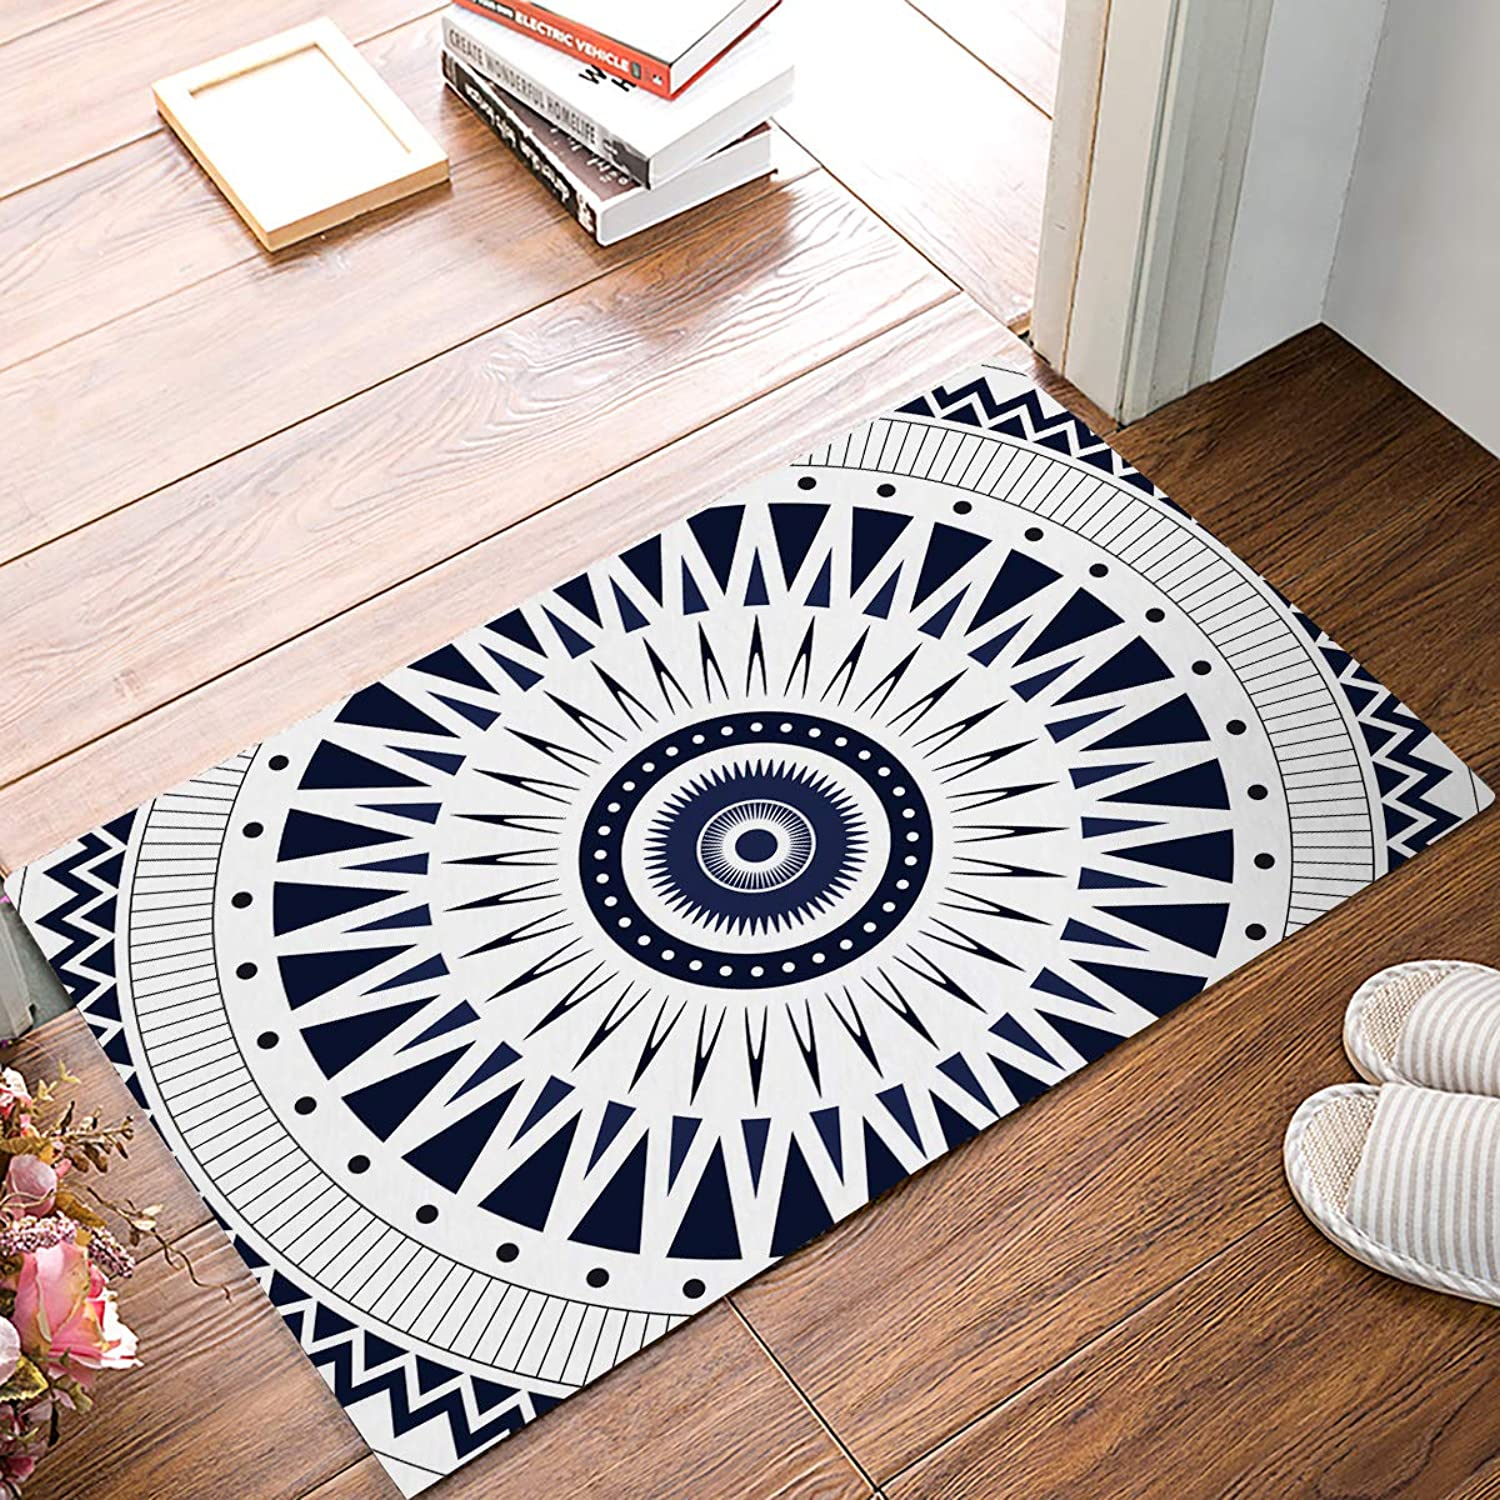 KAROLA Mandala Ethnic Pattern Doormat Entrance Mat Floor Mat Rug Indoor Bathroom Mats Home Decor Mat with Non Slip Backing 20  x 32